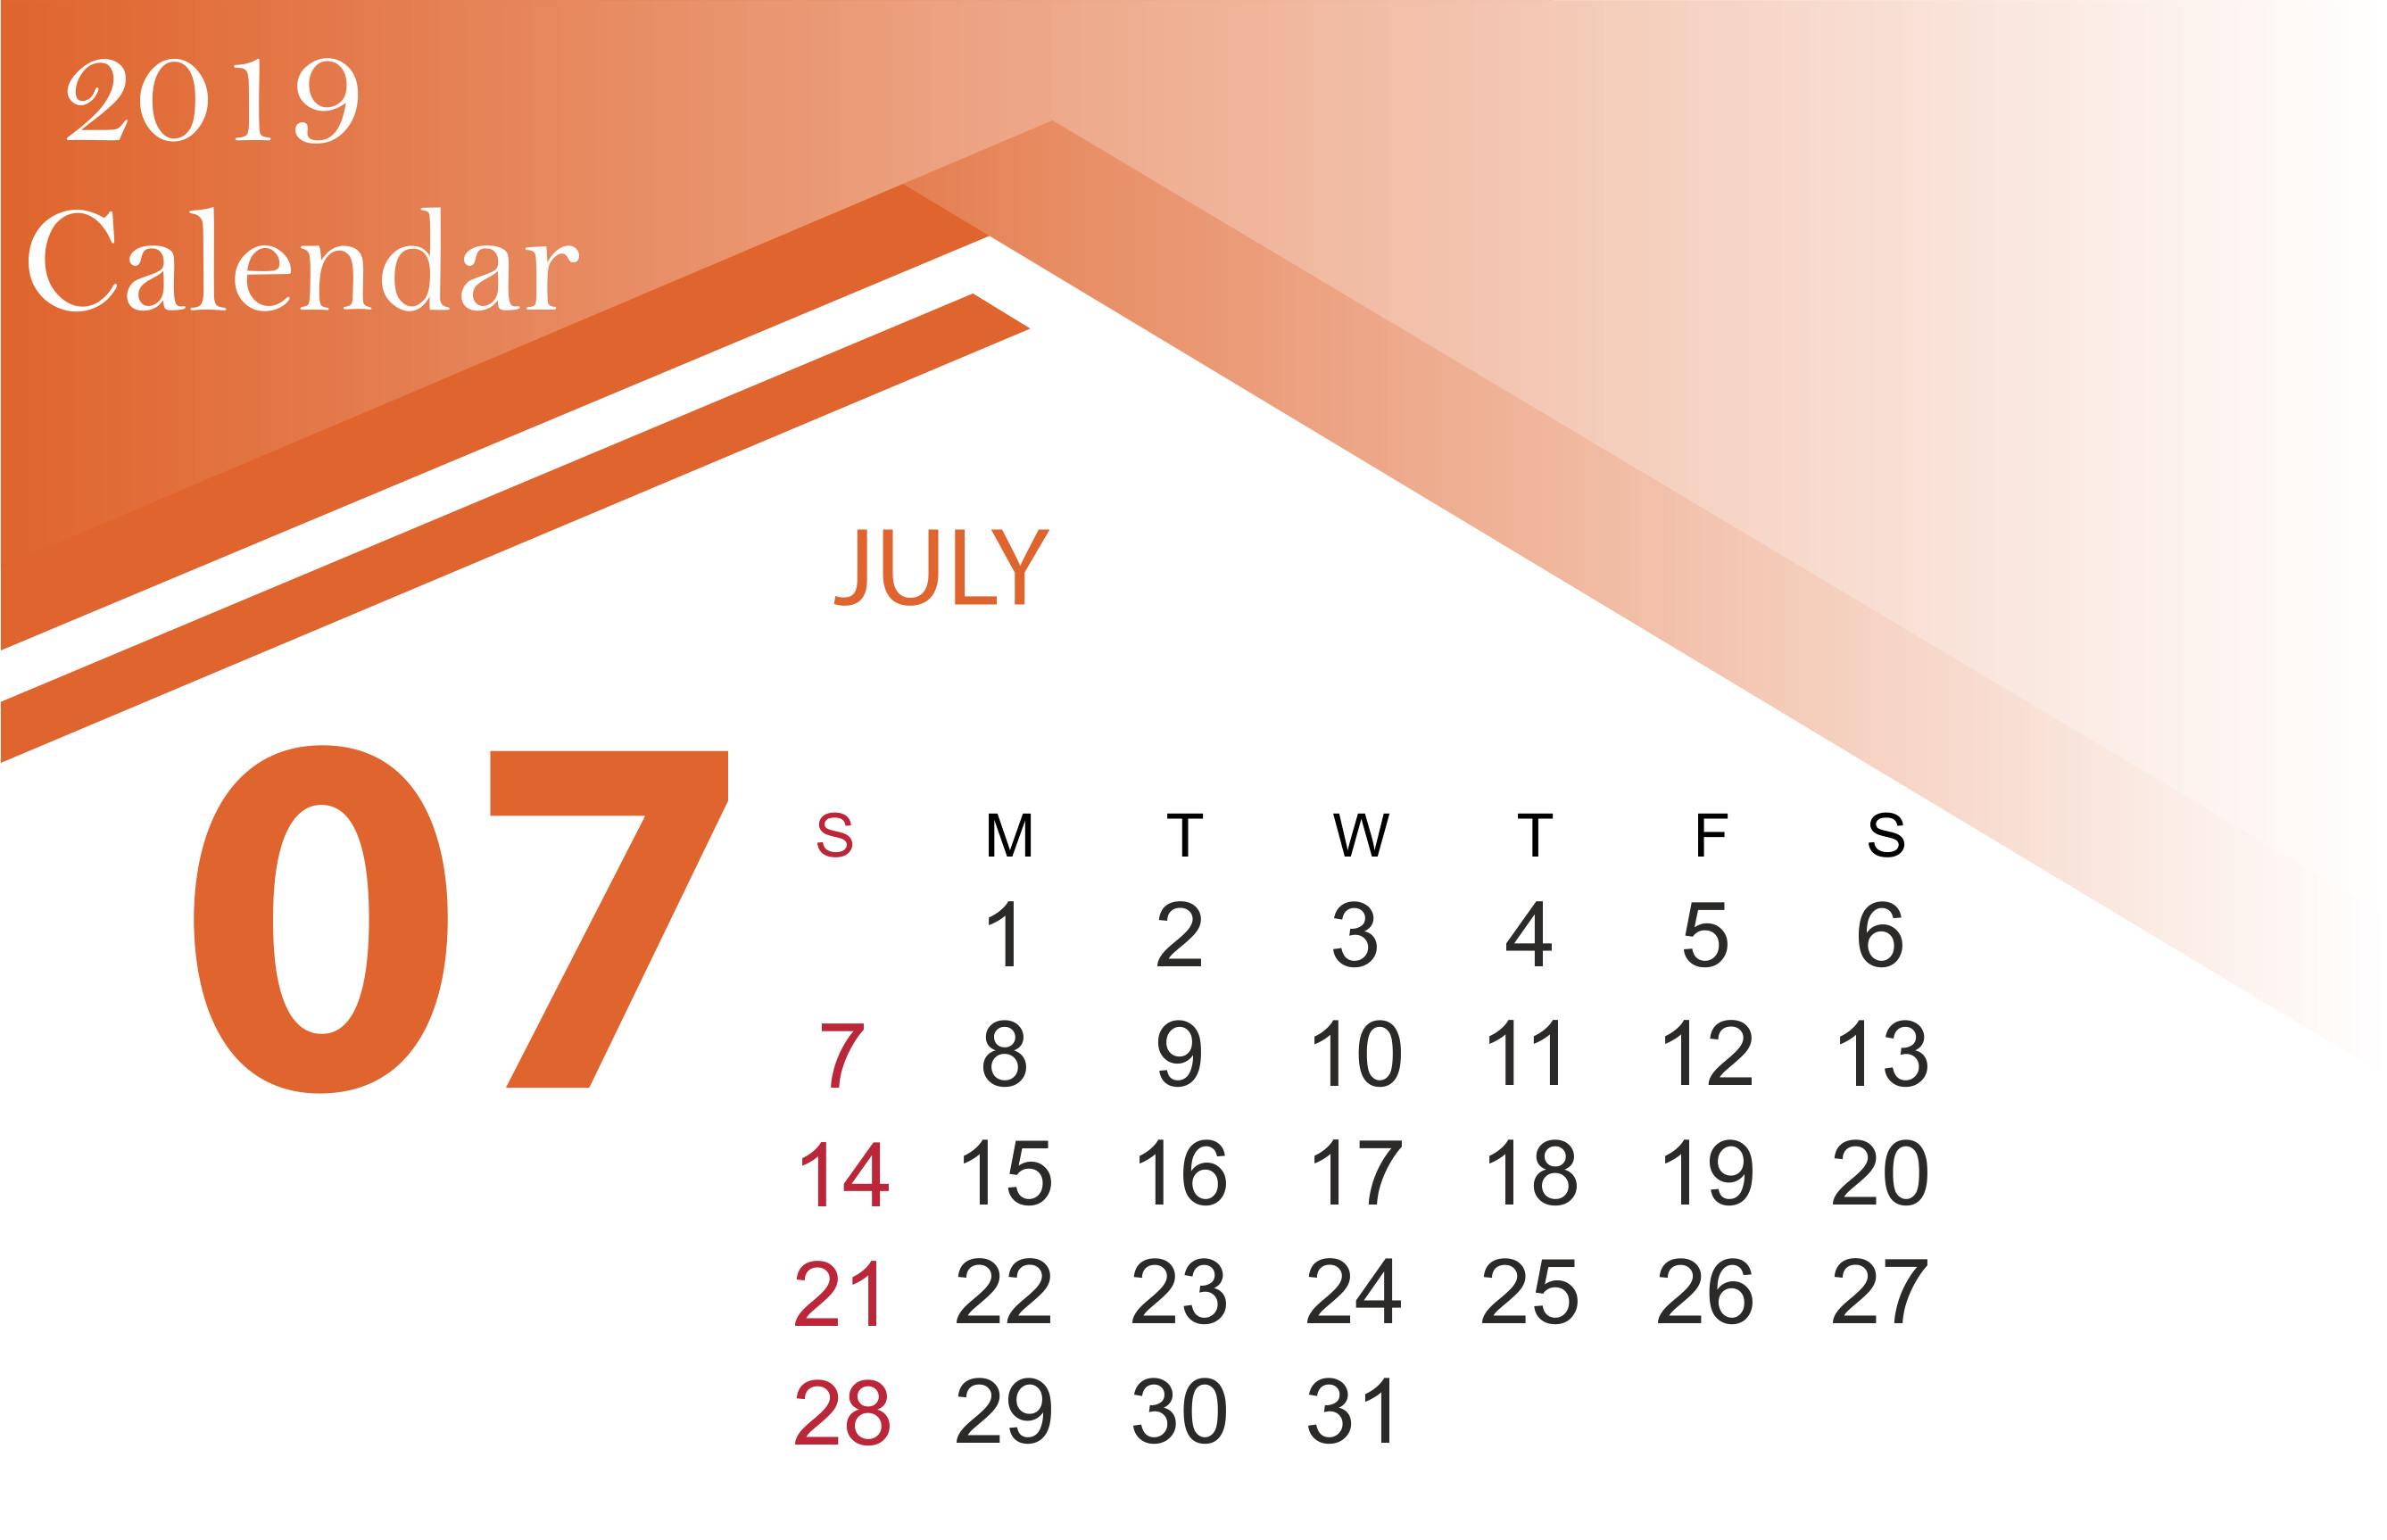 July 2019 Calendar Printable Template With Holidays 2675x1726